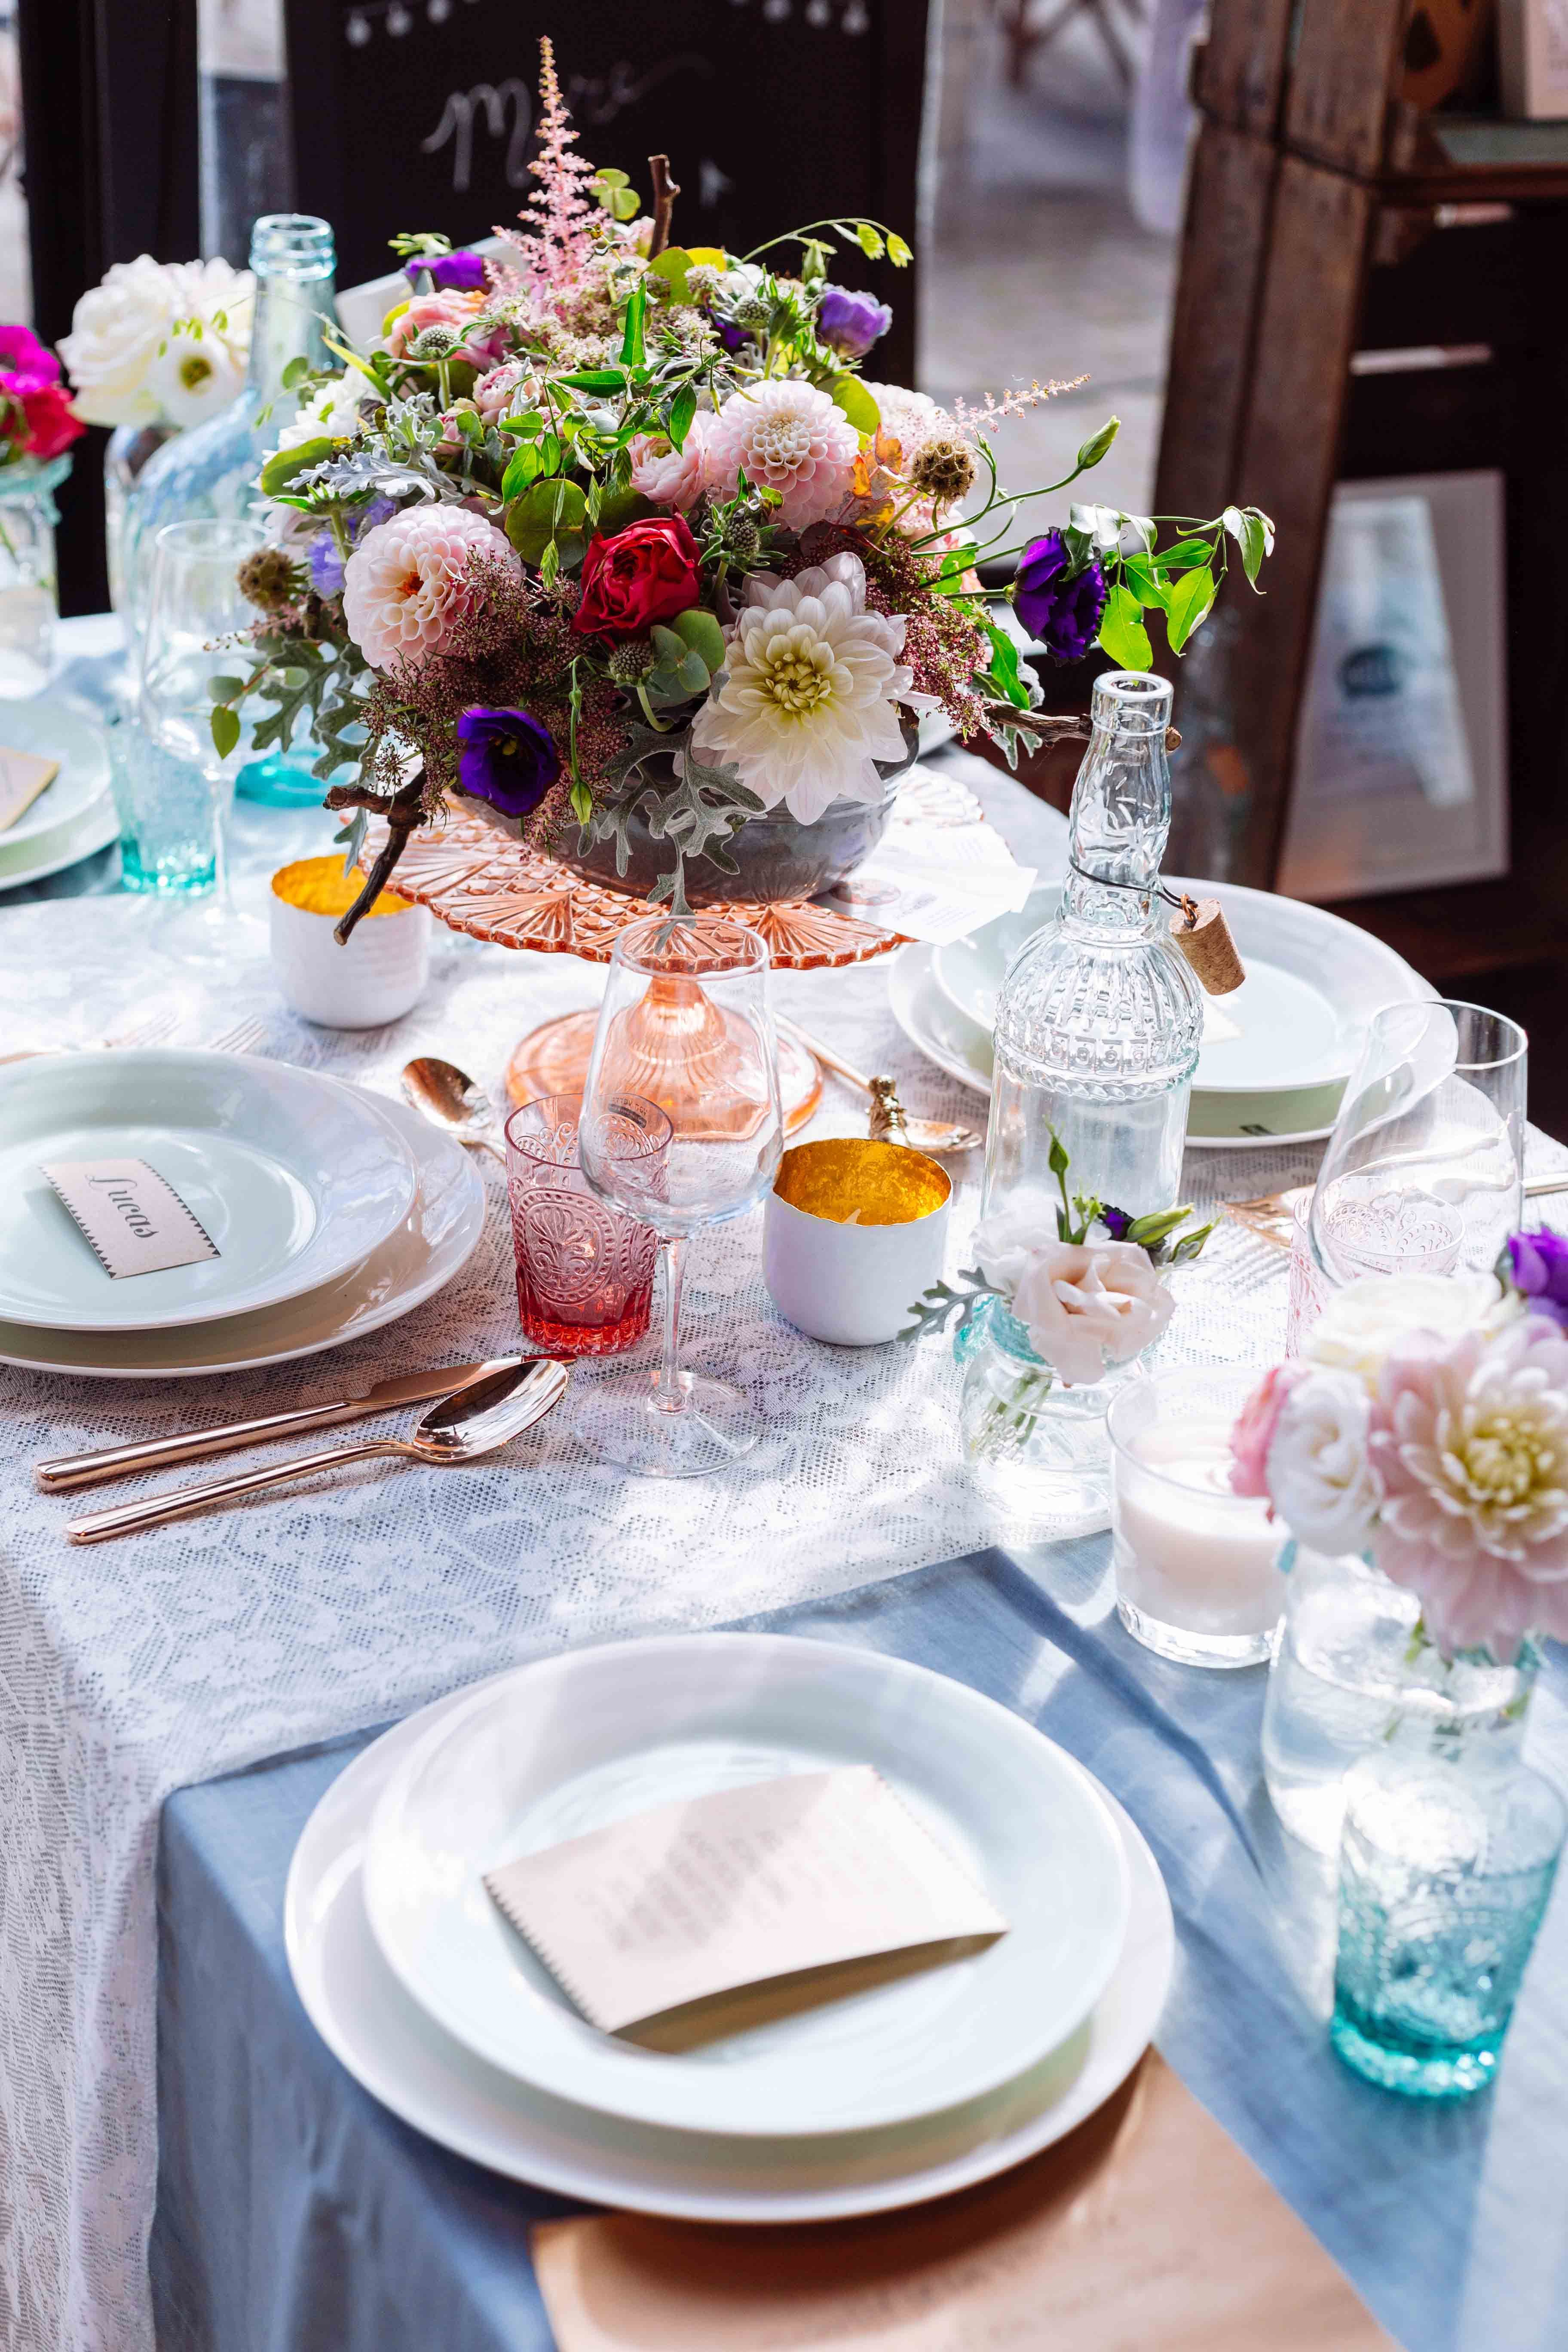 Wedding dinner table decoration weekend tip engaged event  table decorations and weddings